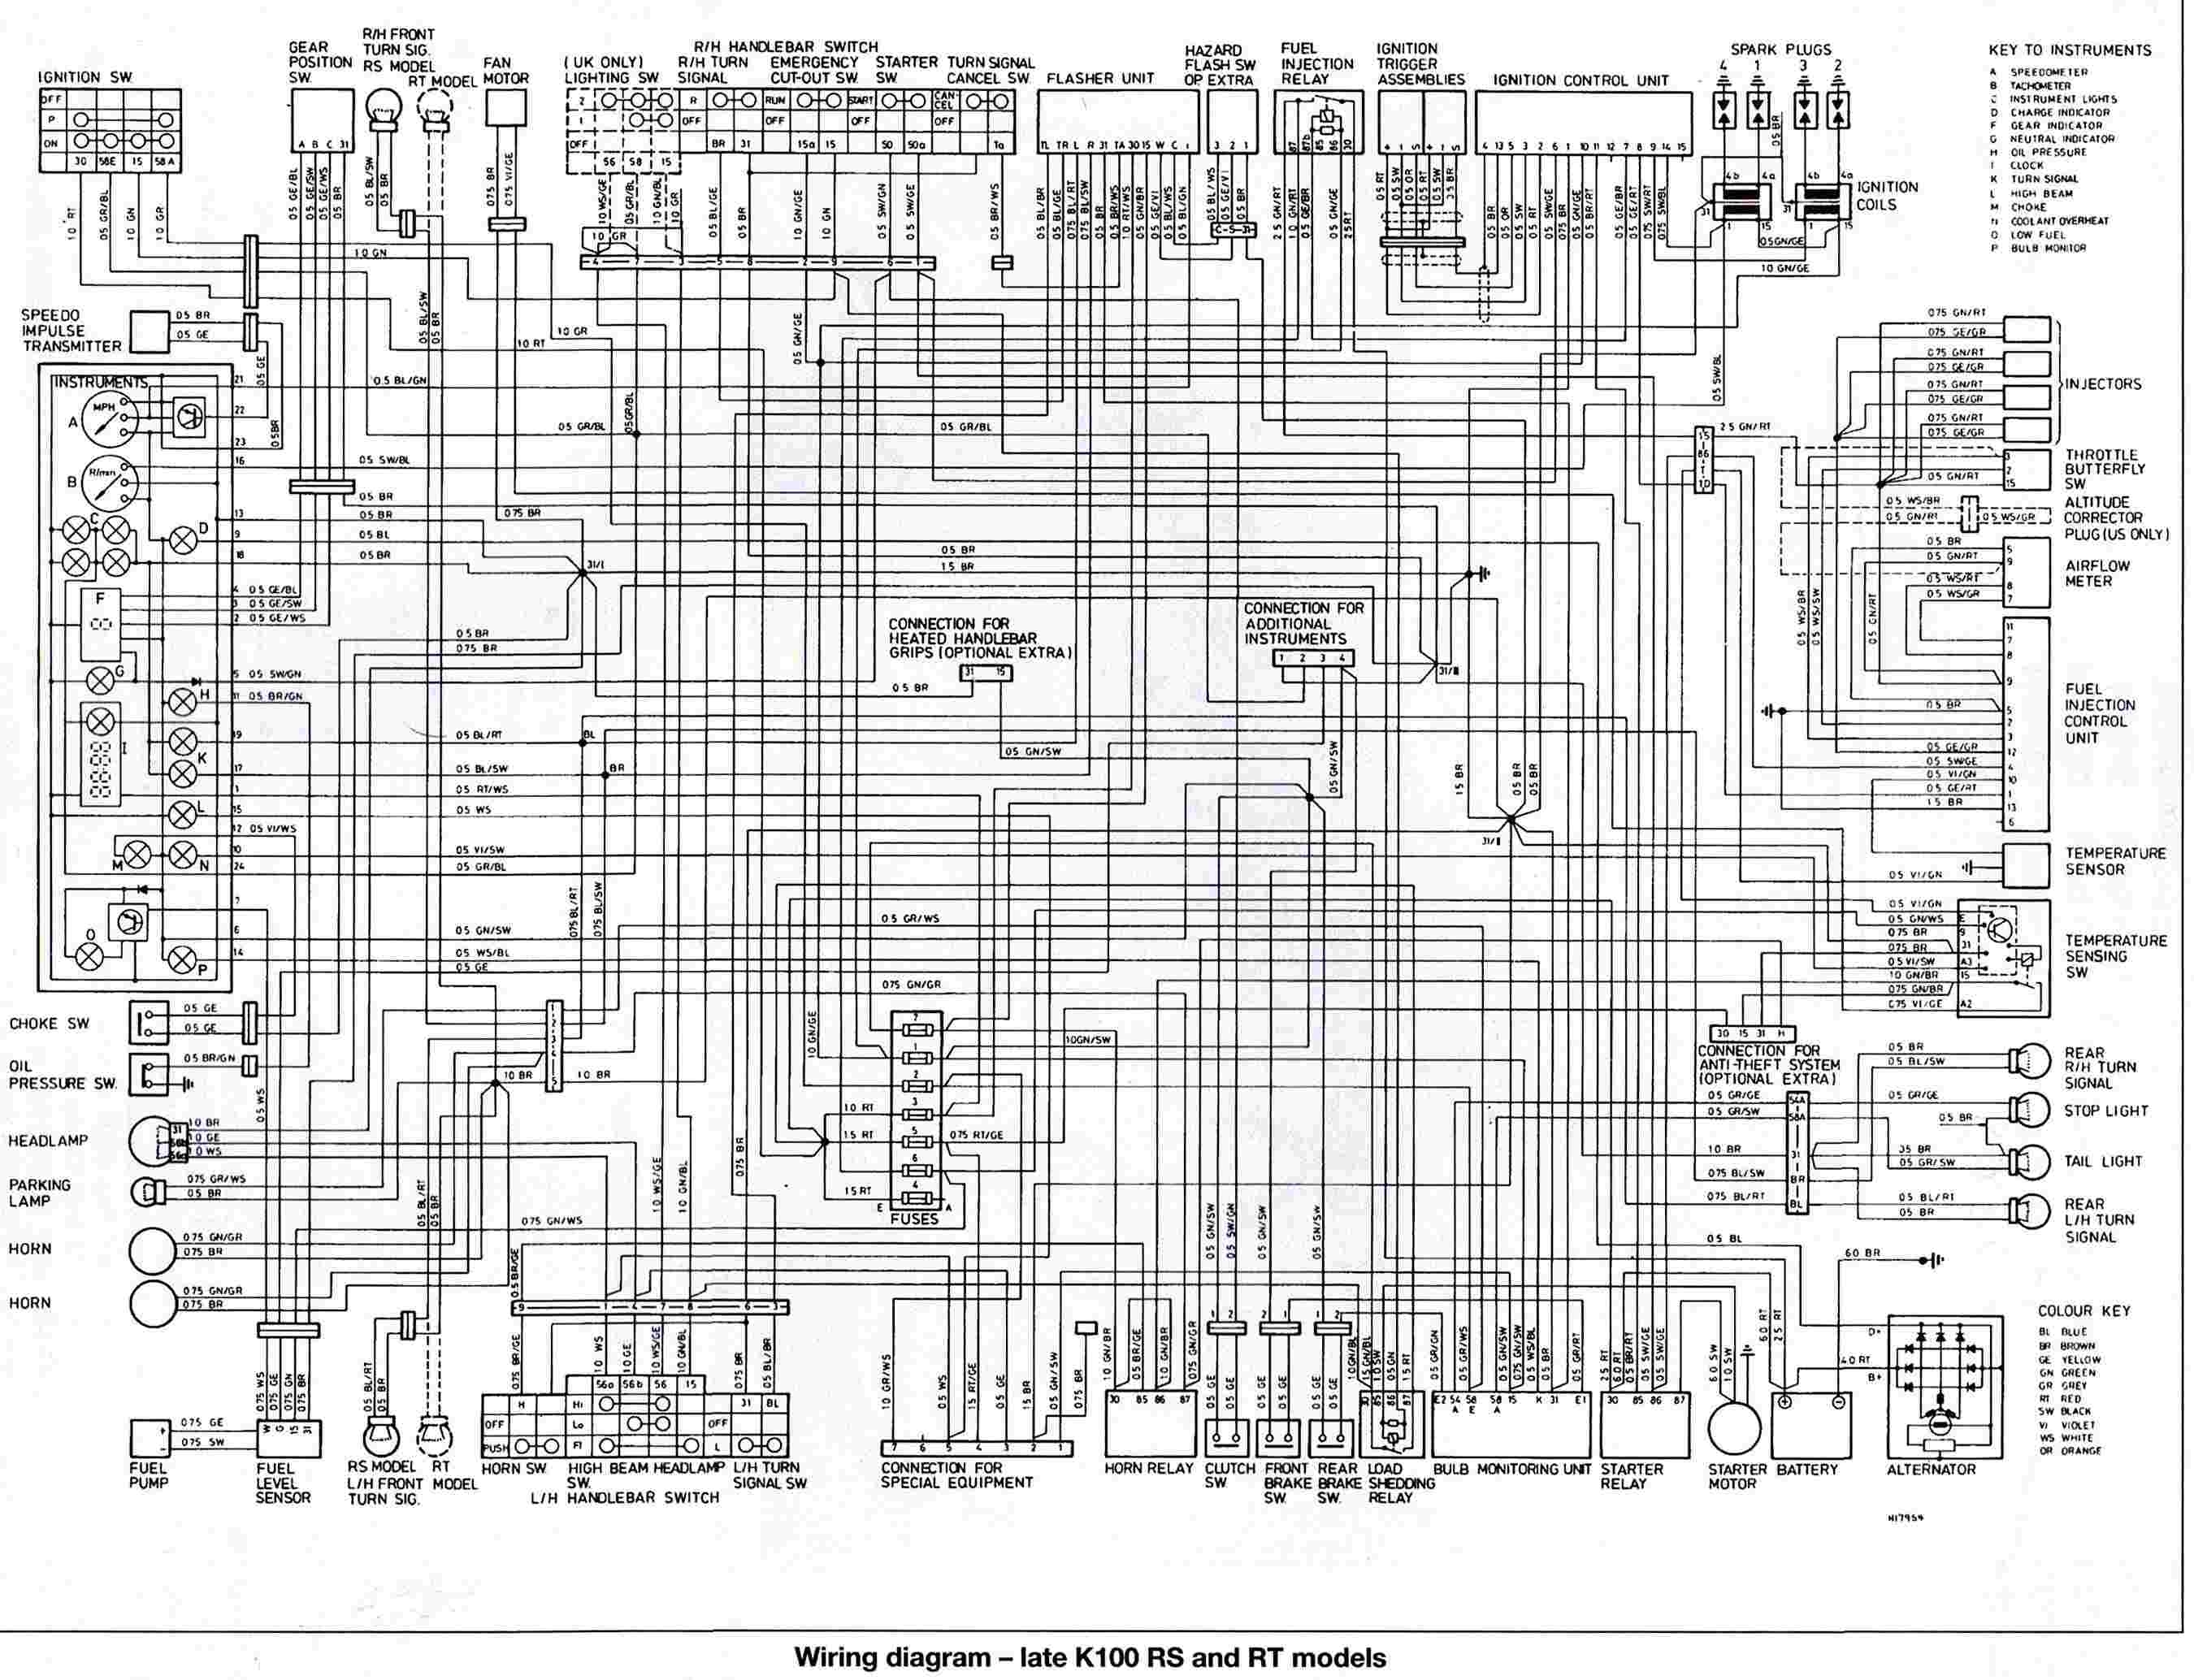 Wiring Diagram 1977 Cj5 Get Free Image About Wiring Diagram